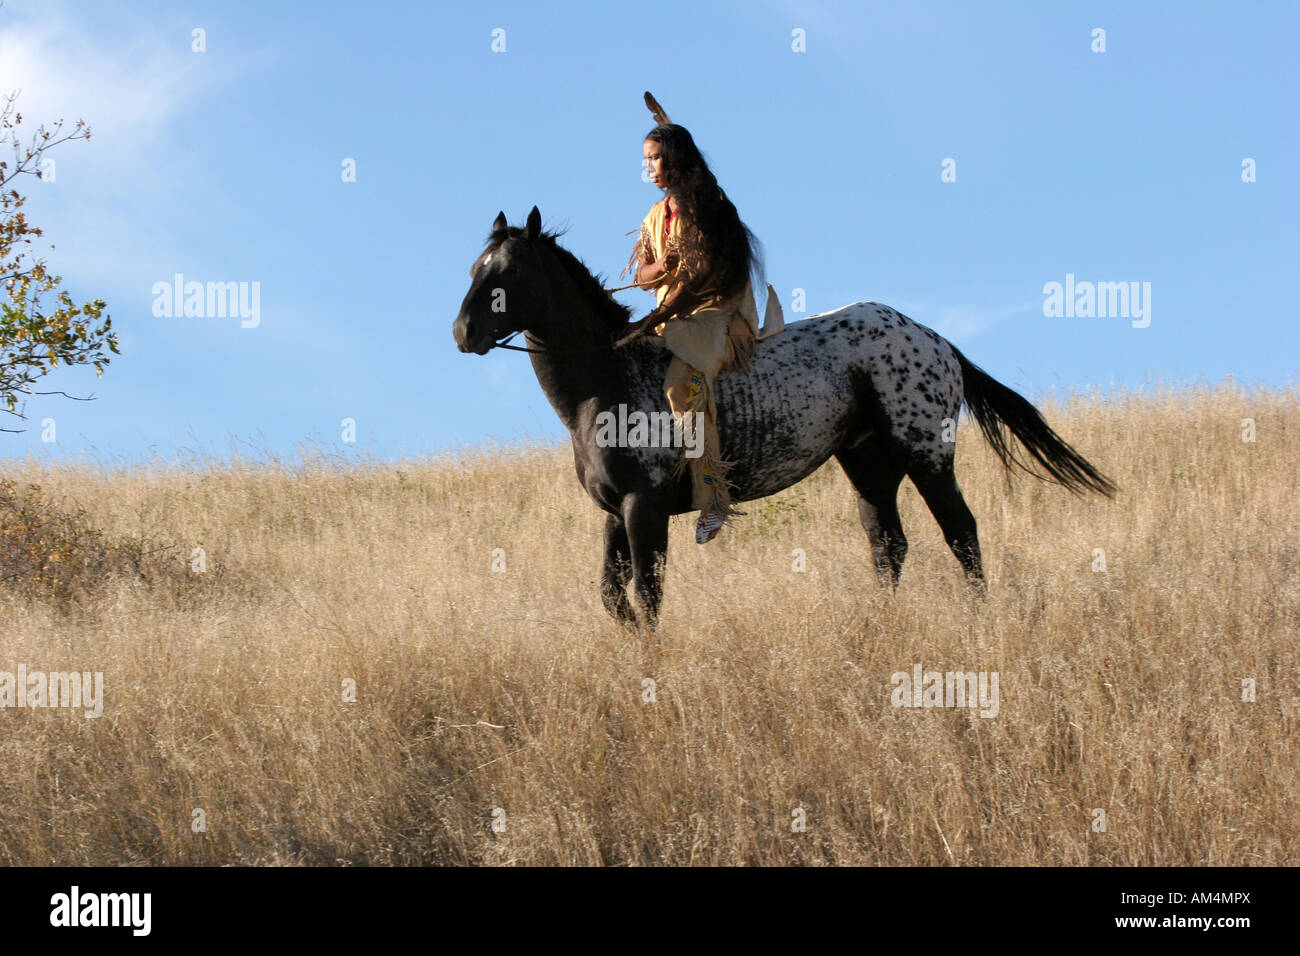 A Native American Indian man on horseback scouting for enemies or hunting for food in the prairie of South Dakota - Stock Image